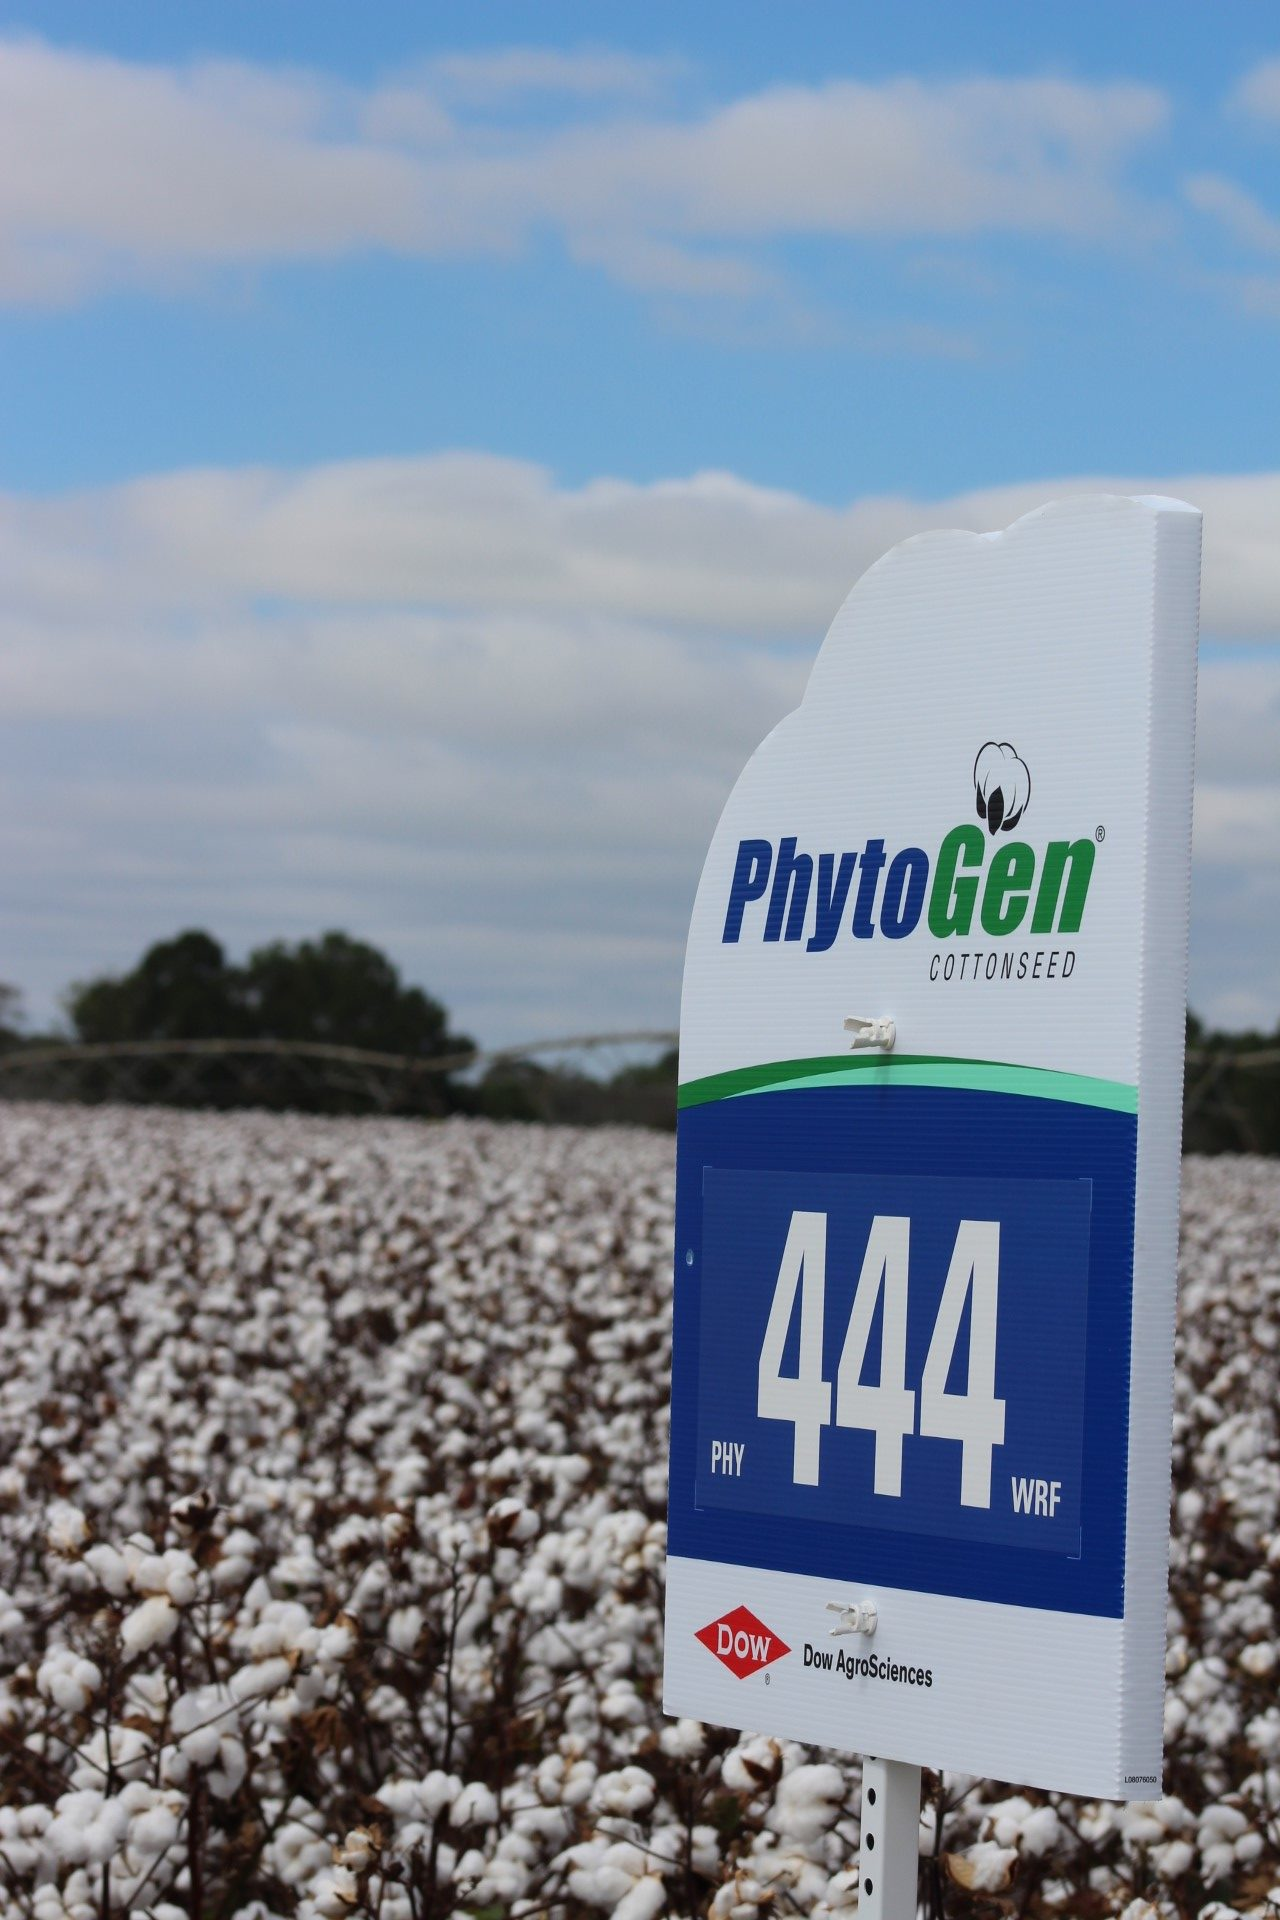 Upland Varieties With Acala-like Quality Improve Profit Potential - Cotton Grower